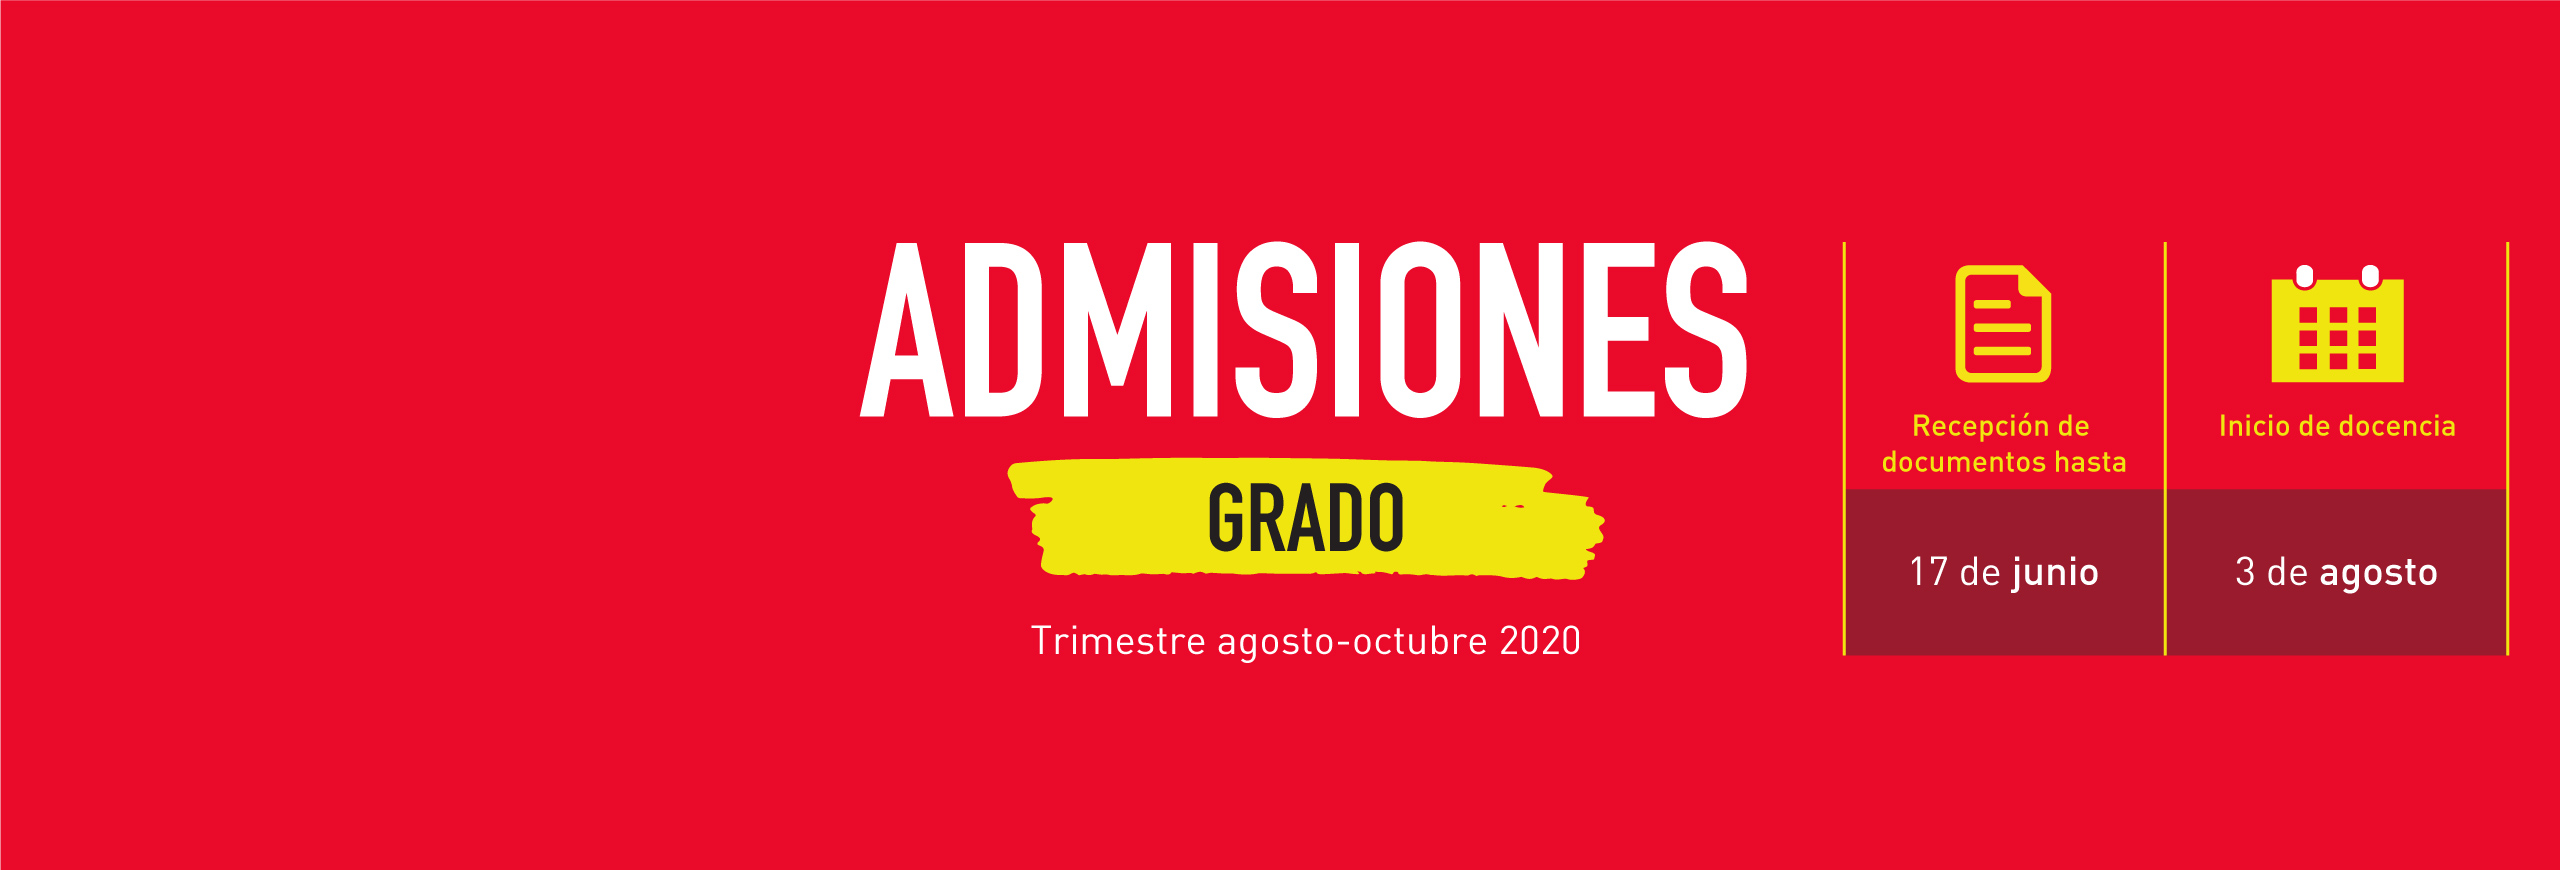 Admissions of degree